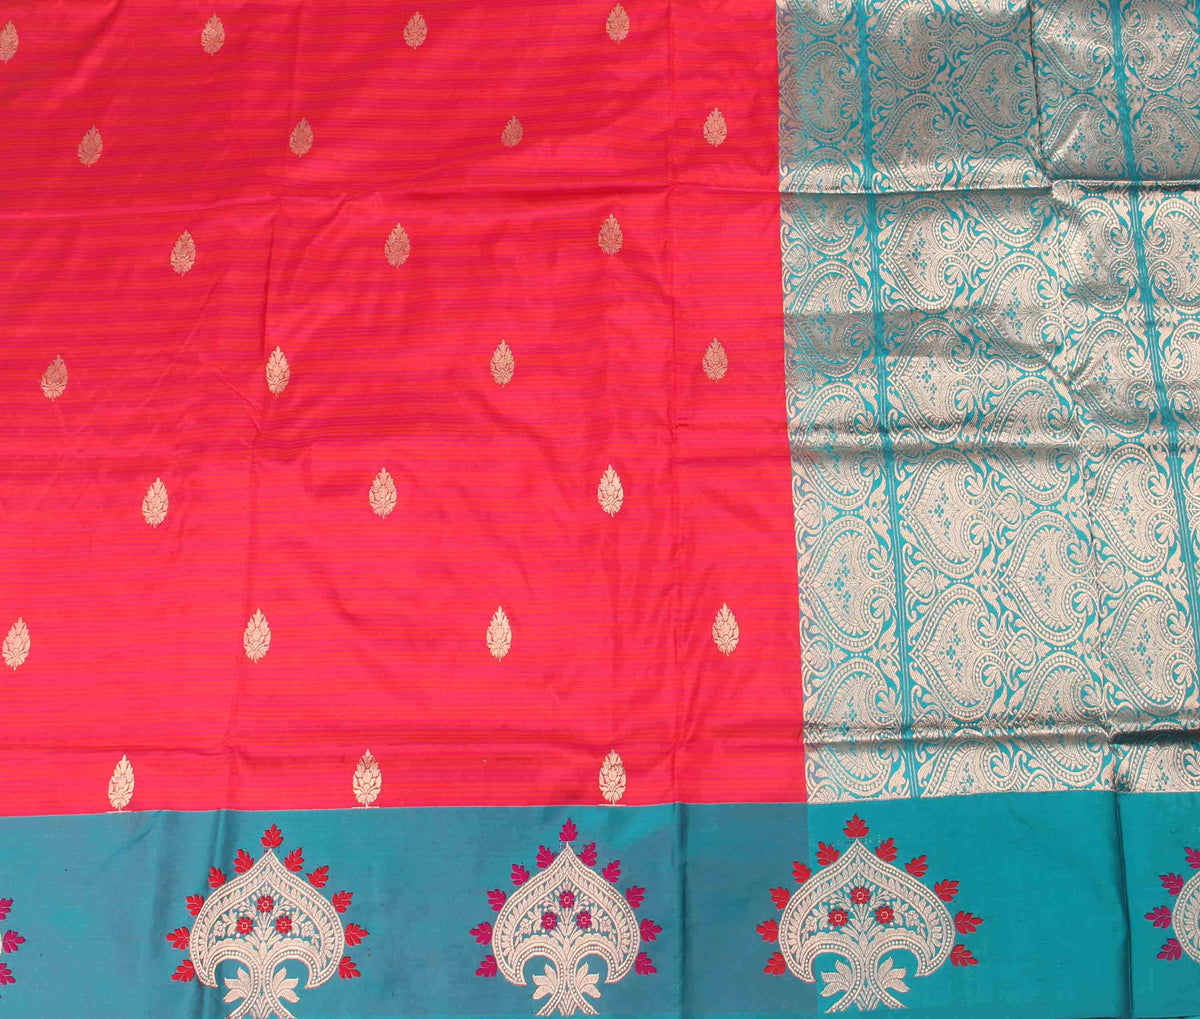 Red Katan Silk Handwoven Banarasi saree with kalgi border (2) Flat